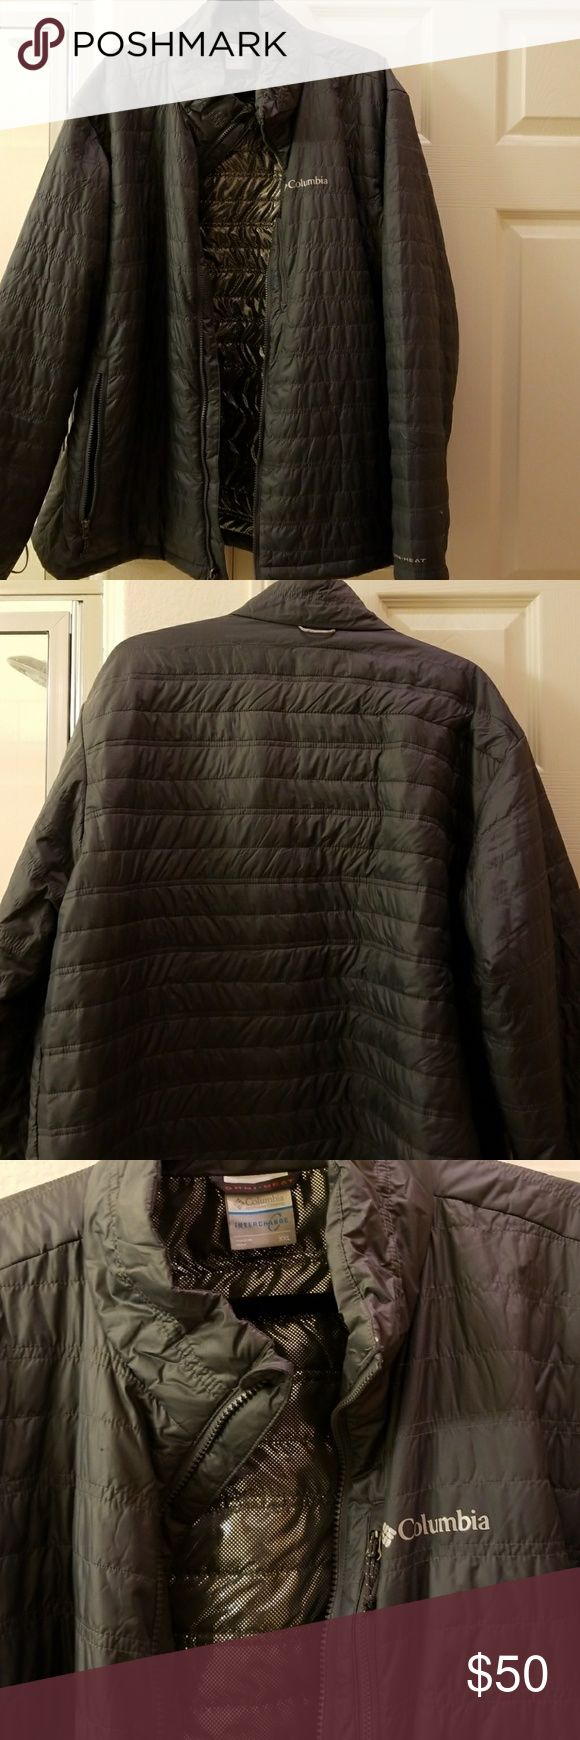 Columbia Men's Jacket Like new, worn once, Men's lightweight puffer jacket in dark gray with Omni-heat silver colored interior. 3 exterior zip pockets. Columbia Jackets & Coats Puffers